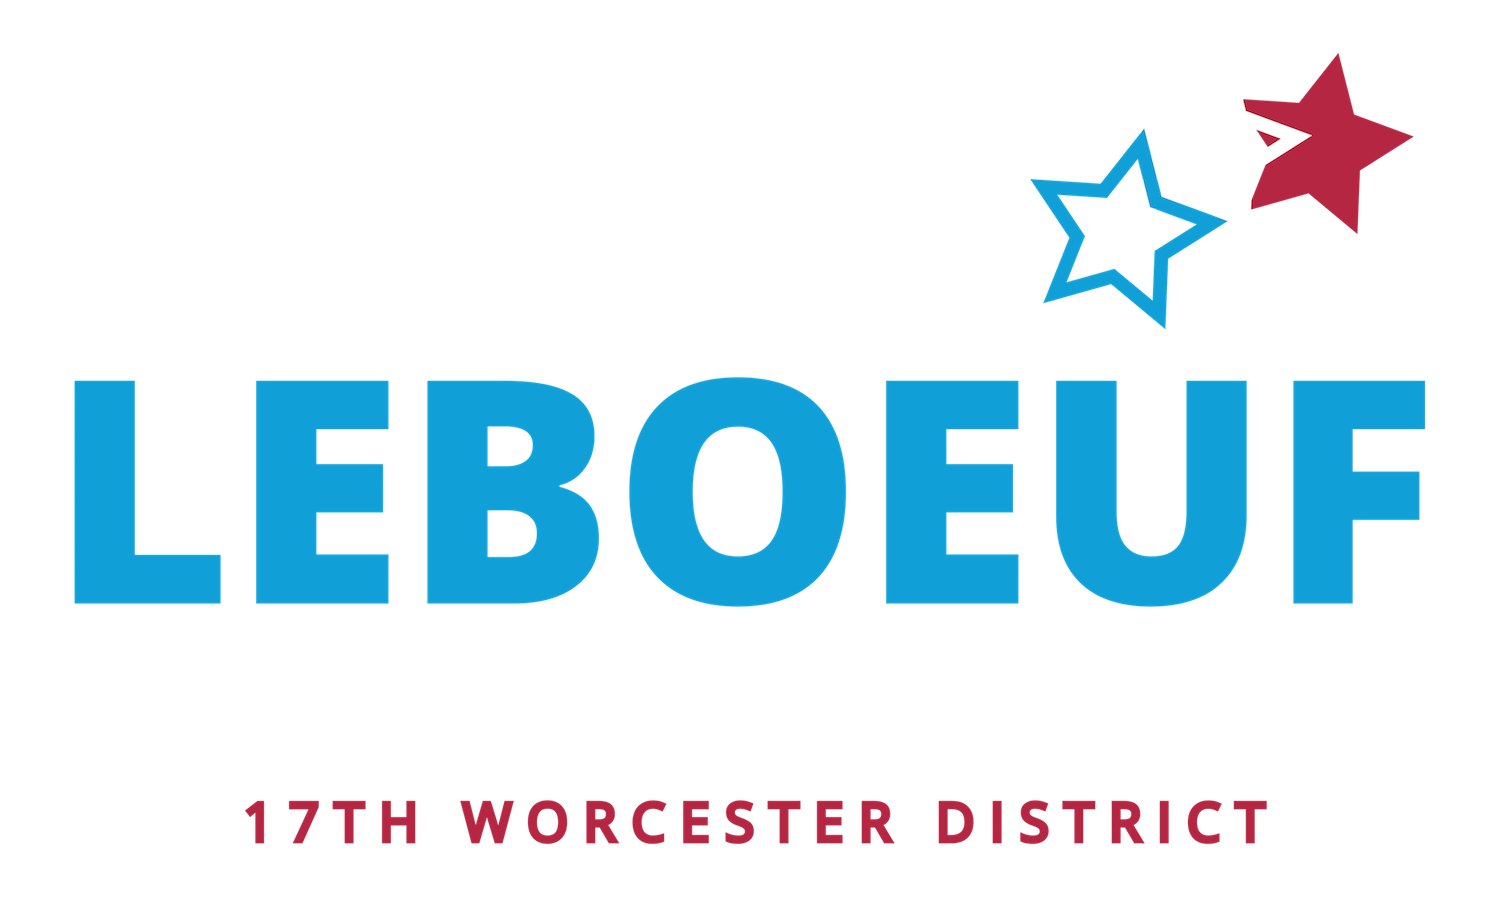 David LeBoeuf for State Rep